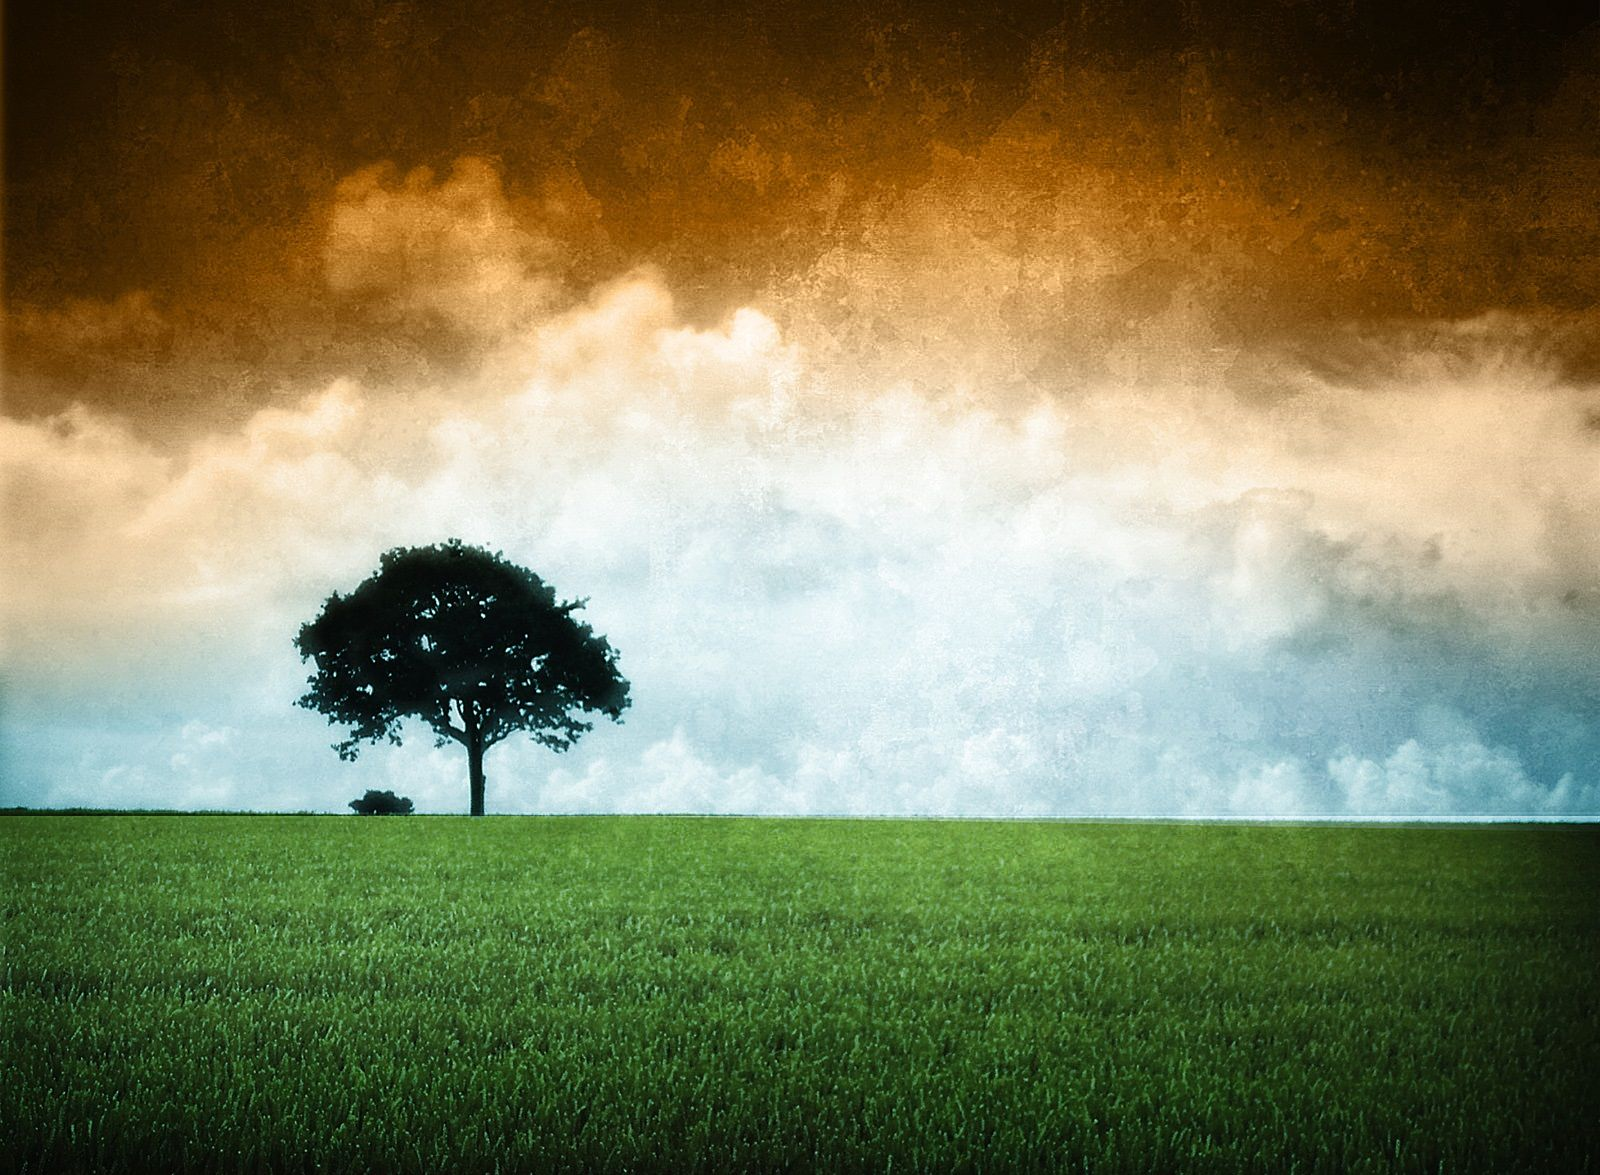 Cool Collage Idea For A Card With The Indian Flag Independence Day Images Indian Flag Wallpaper Independence Day Images Hd